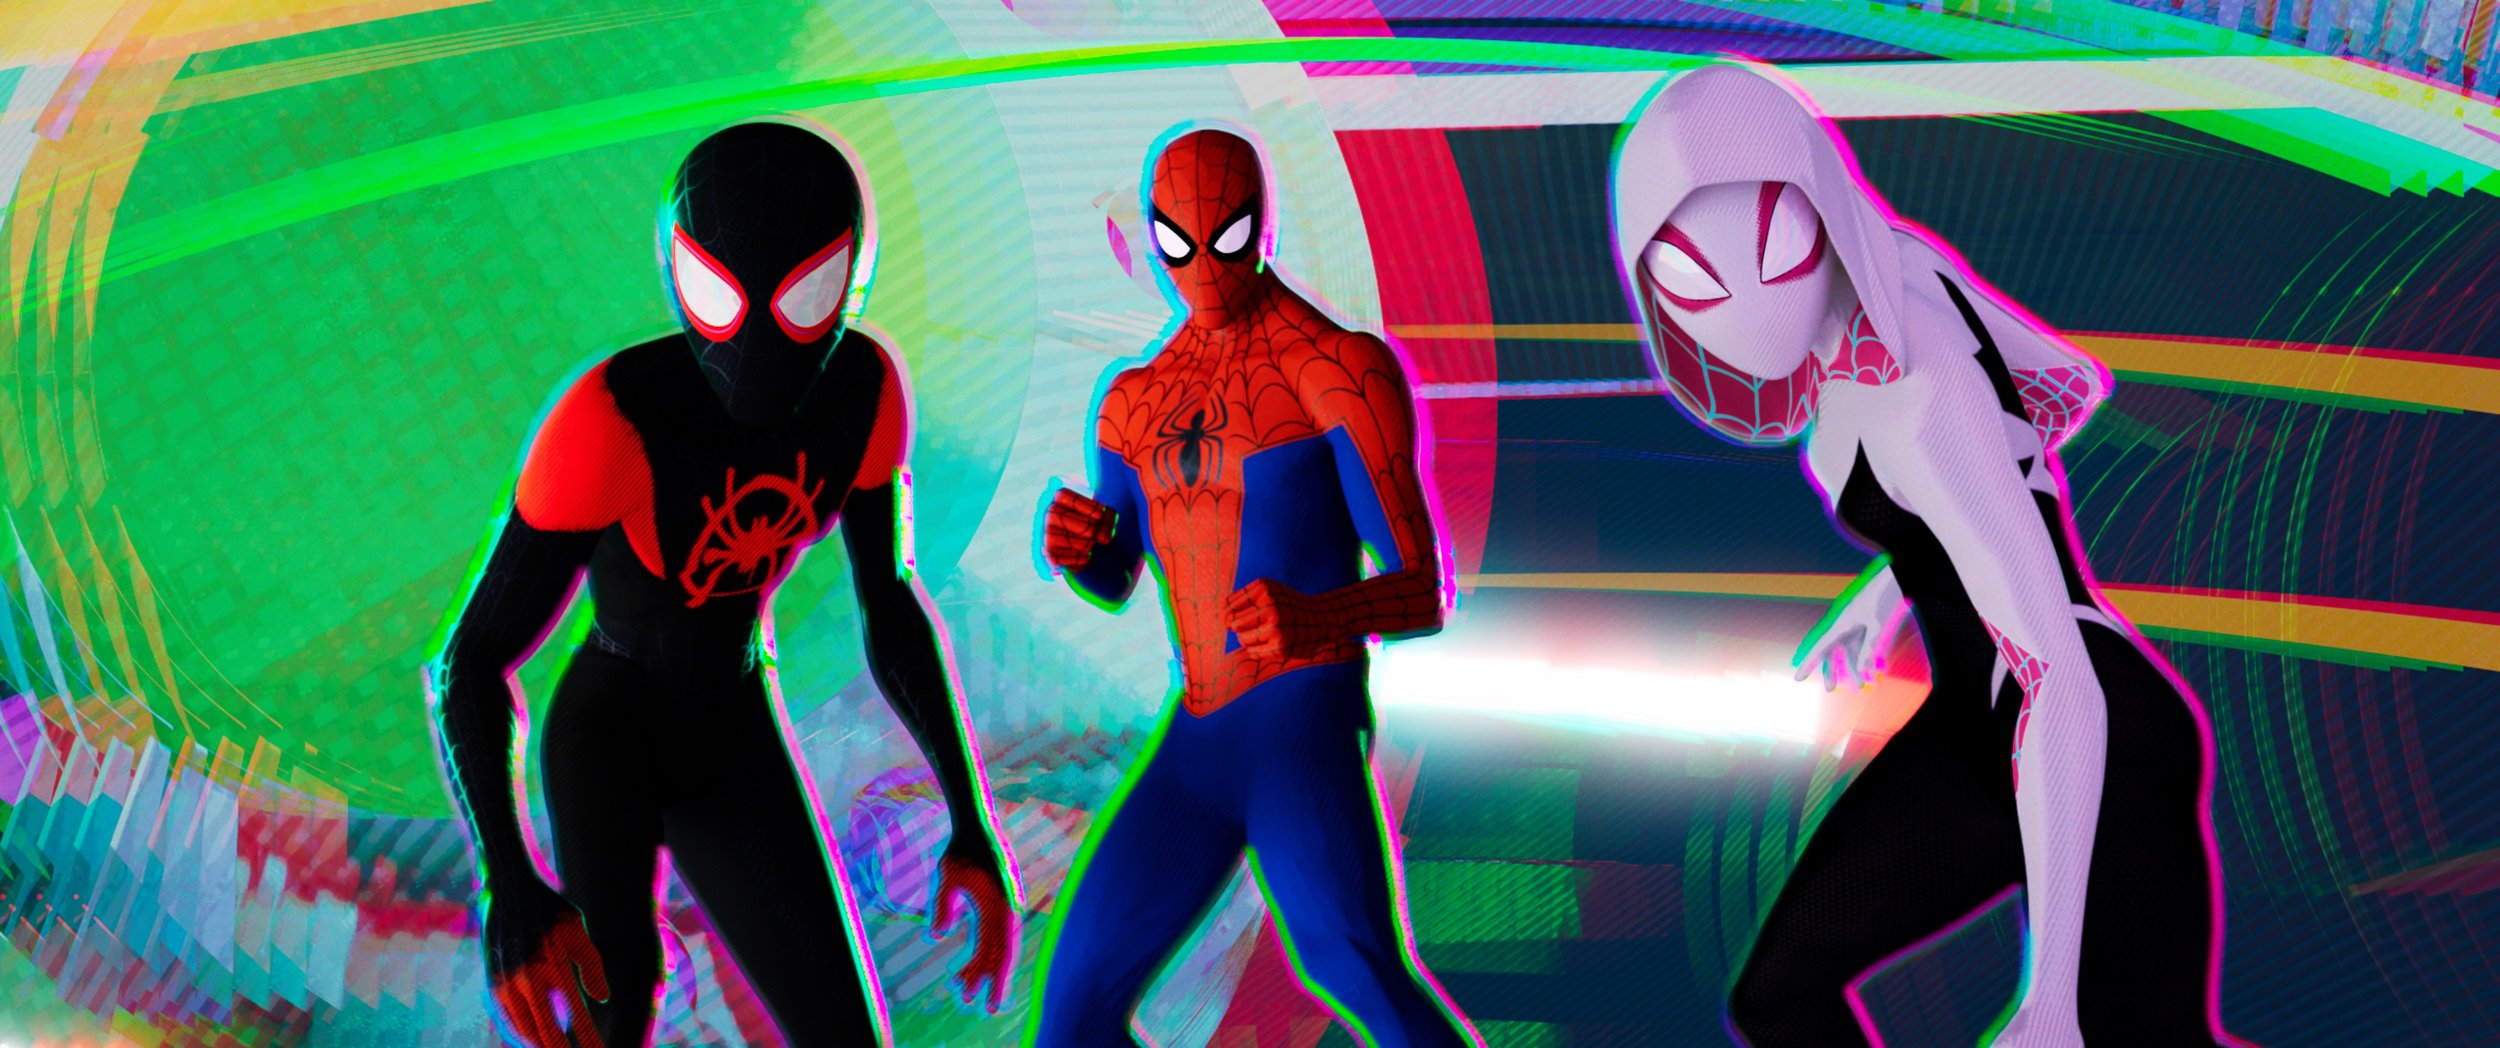 Spider-Man: Into the Spider-Verse. As many Spider-Persons as it takes.